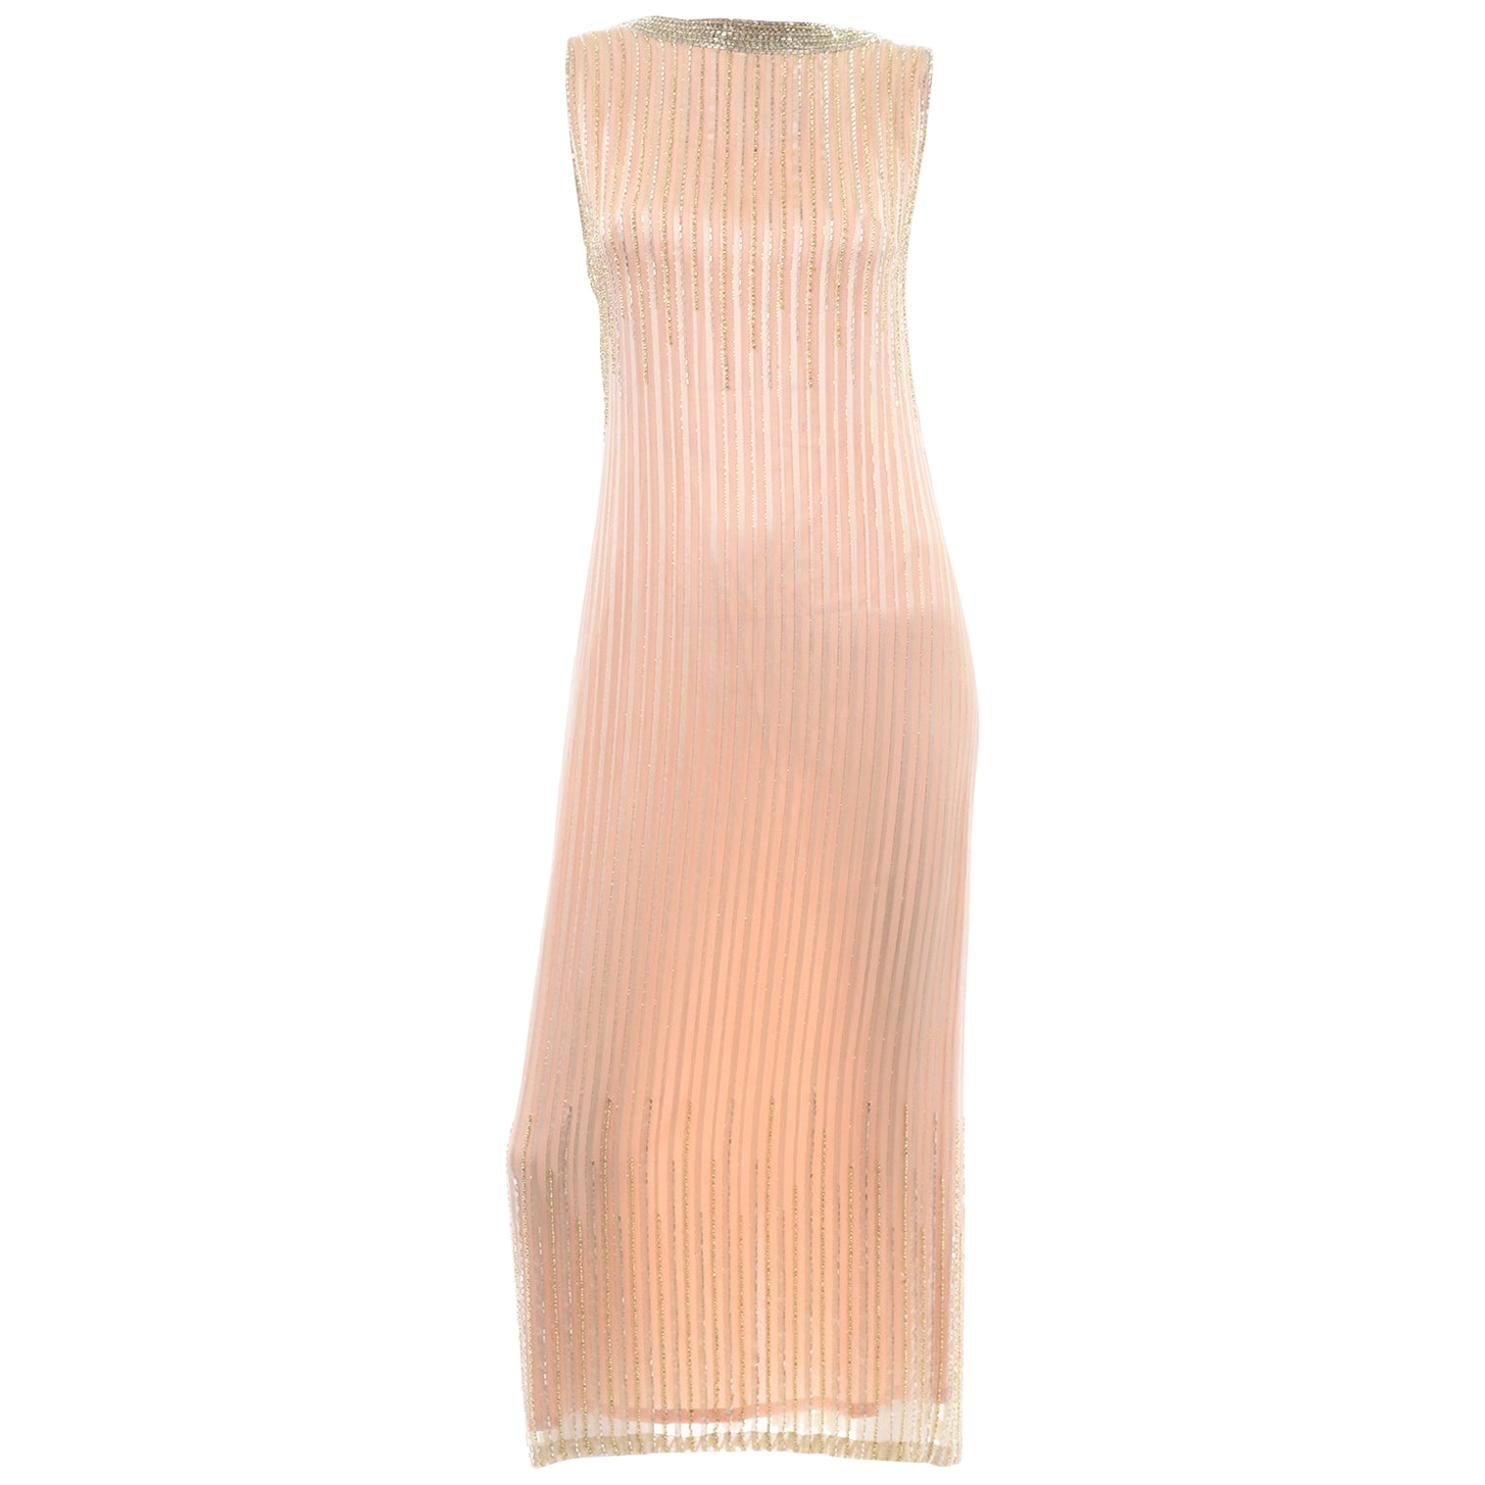 Vintage Peach & Gold Beaded Sheer Evening Dress W Draping w Boutique Label